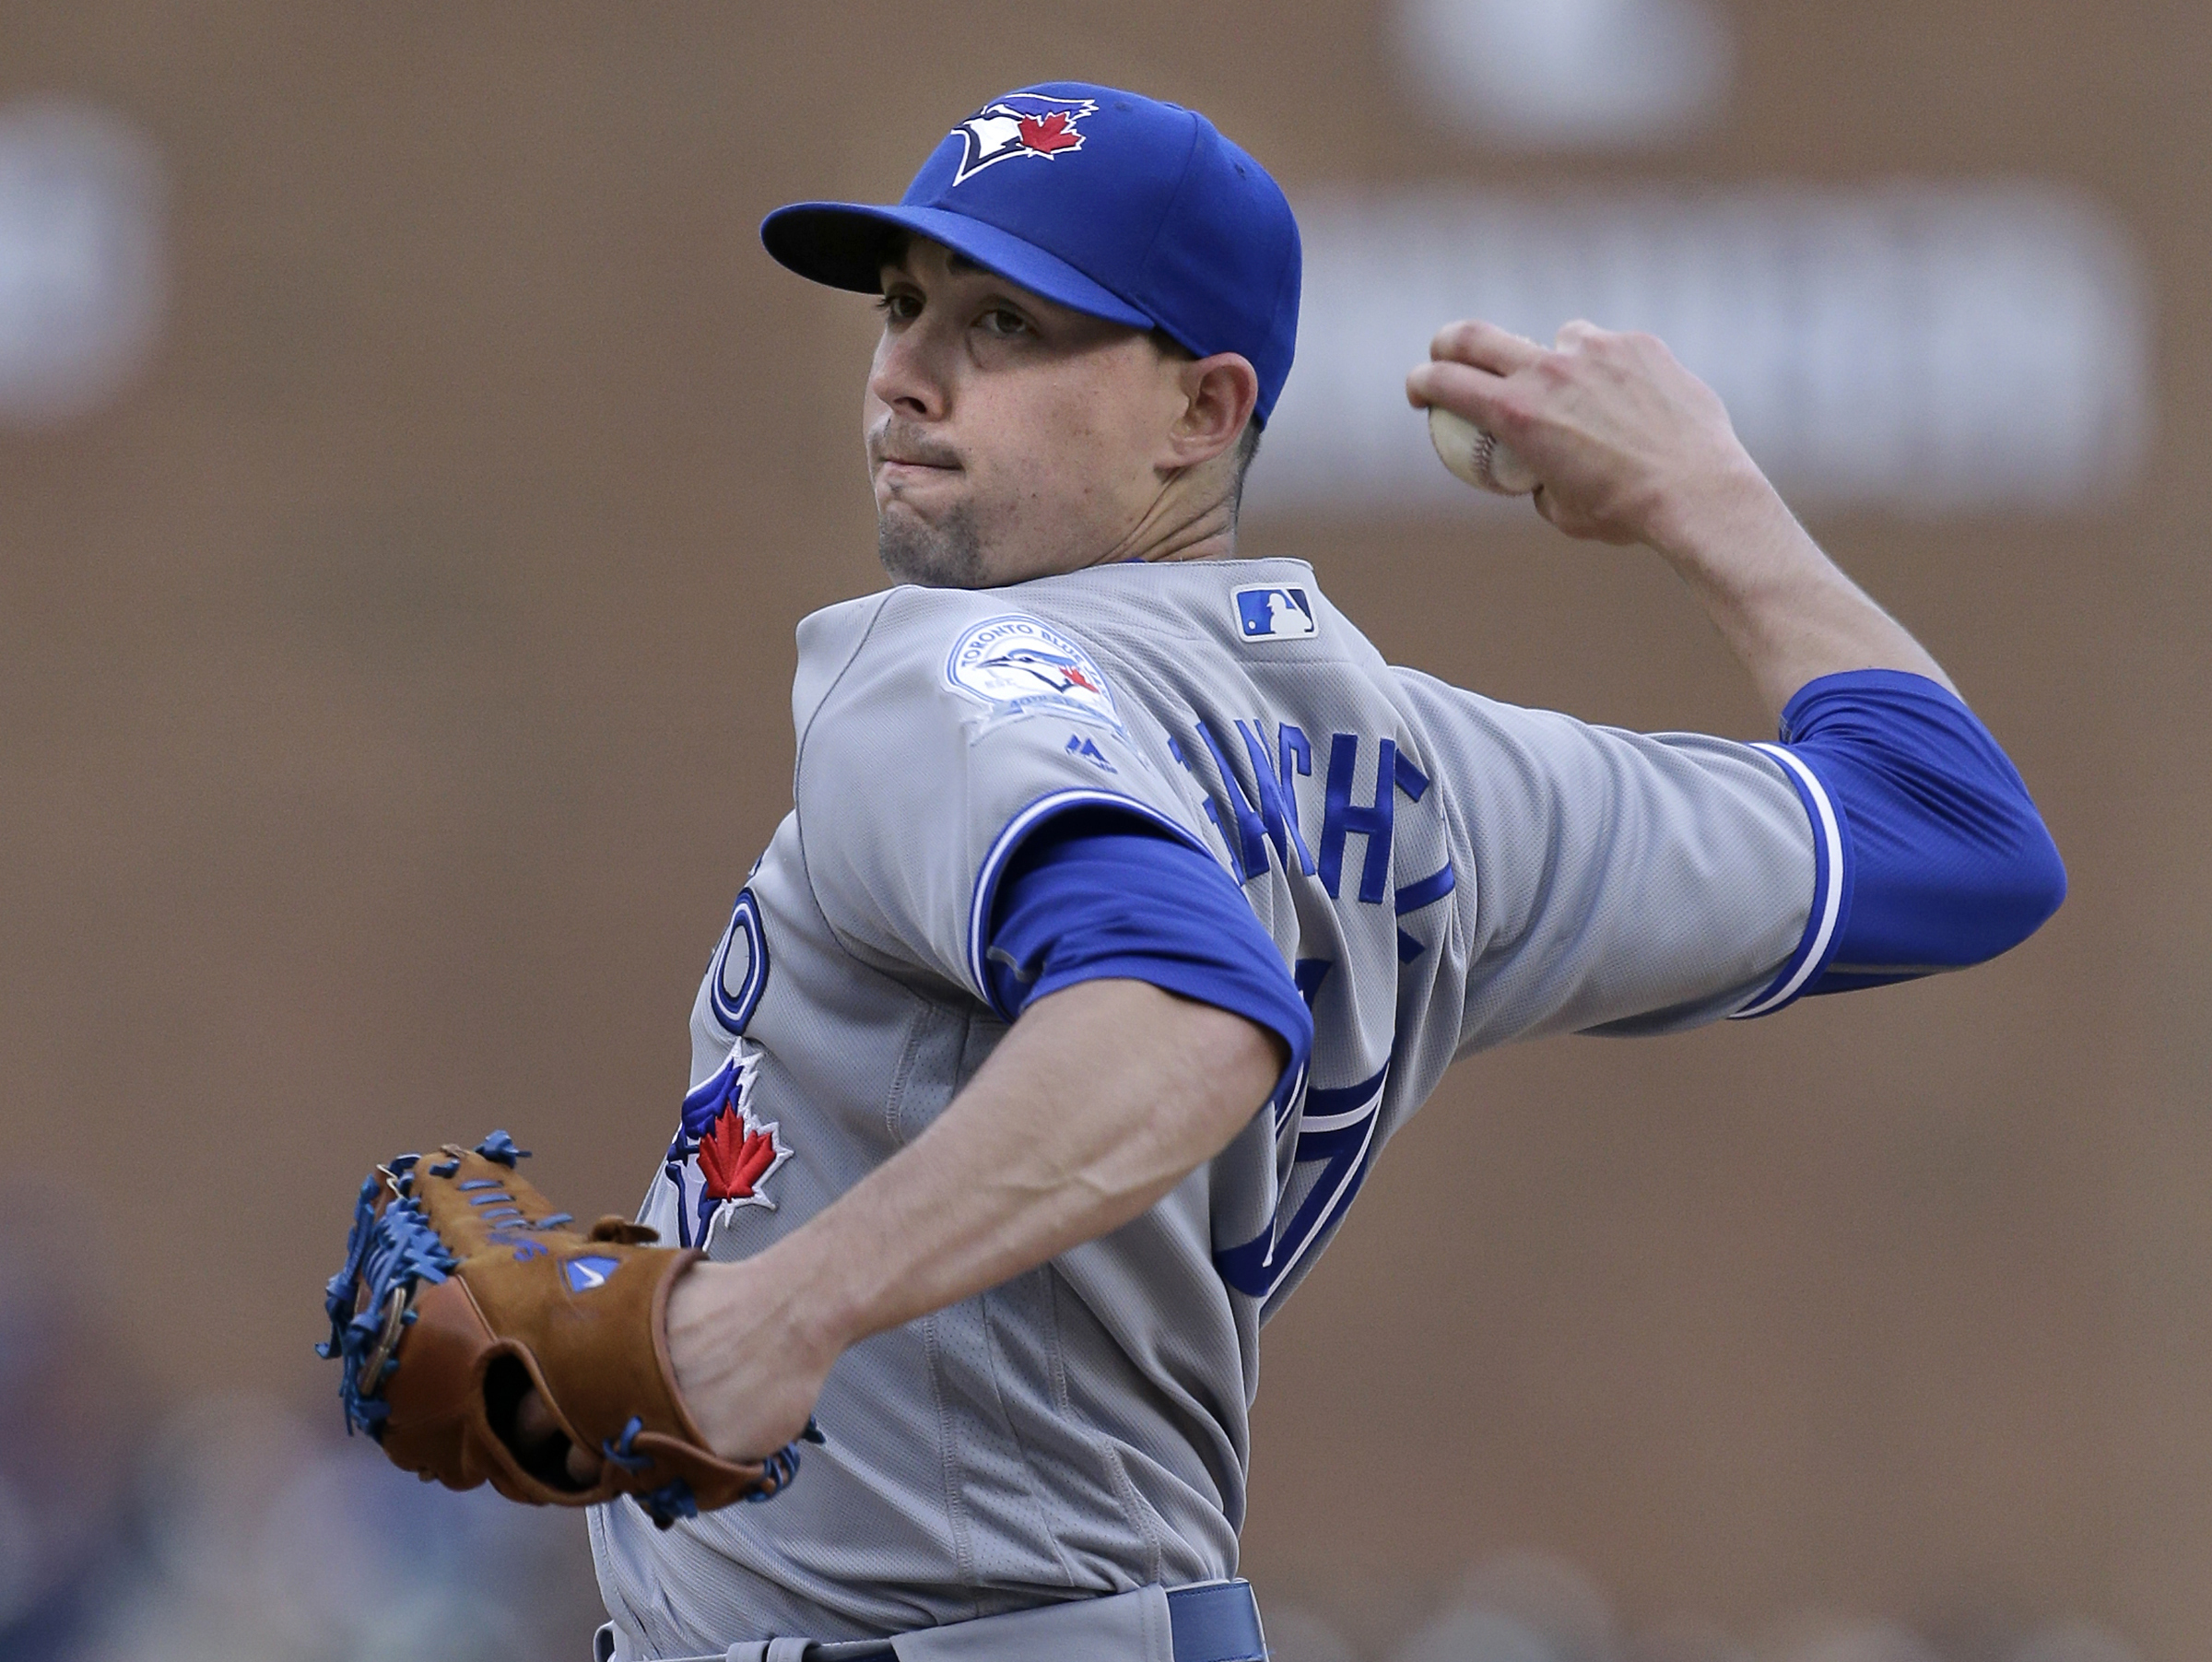 Toronto Blue Jays' Aaron Sanchez pitches against the Detroit Tigers during the first inning of a baseball game Tuesday, June 7, 2016, in Detroit. (AP Photo/Duane Burleson)